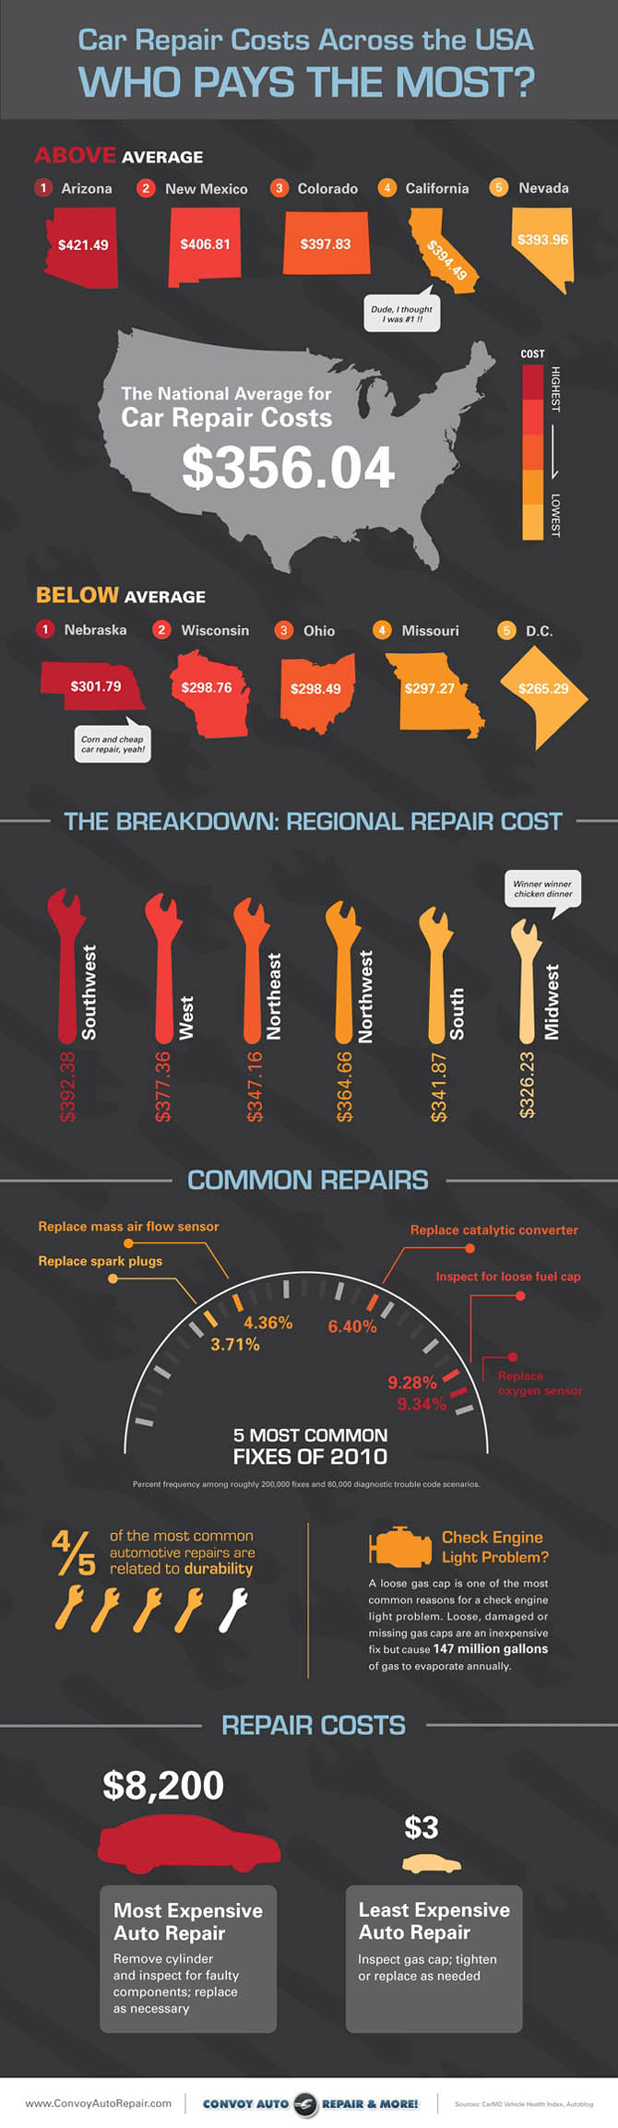 States with Highest Car Repair Costs